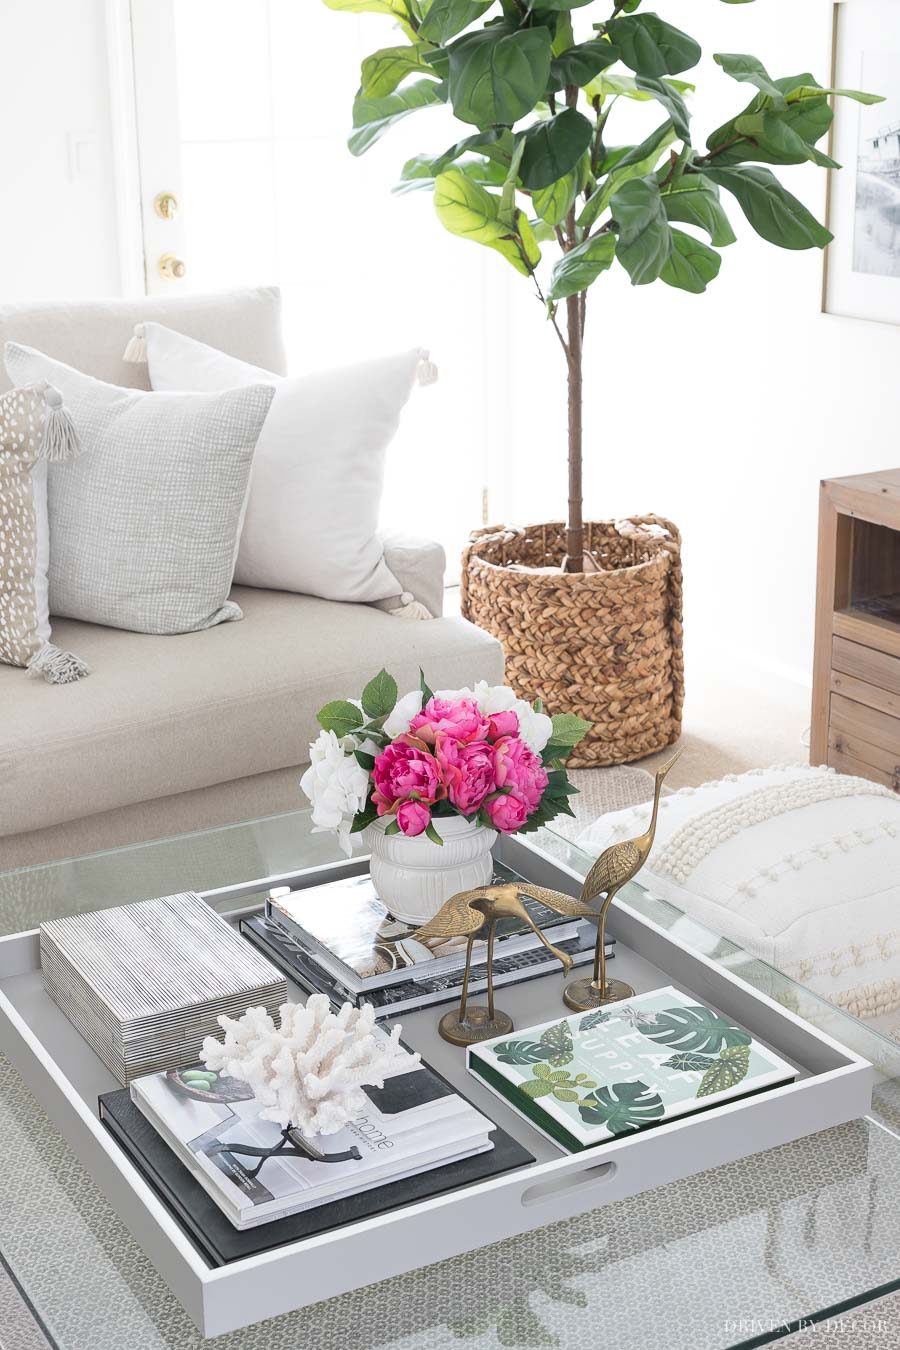 Coffee Table Decor: Ideas & Inspiration | Driven by Decor on Coffee Table Inspiration  id=18405